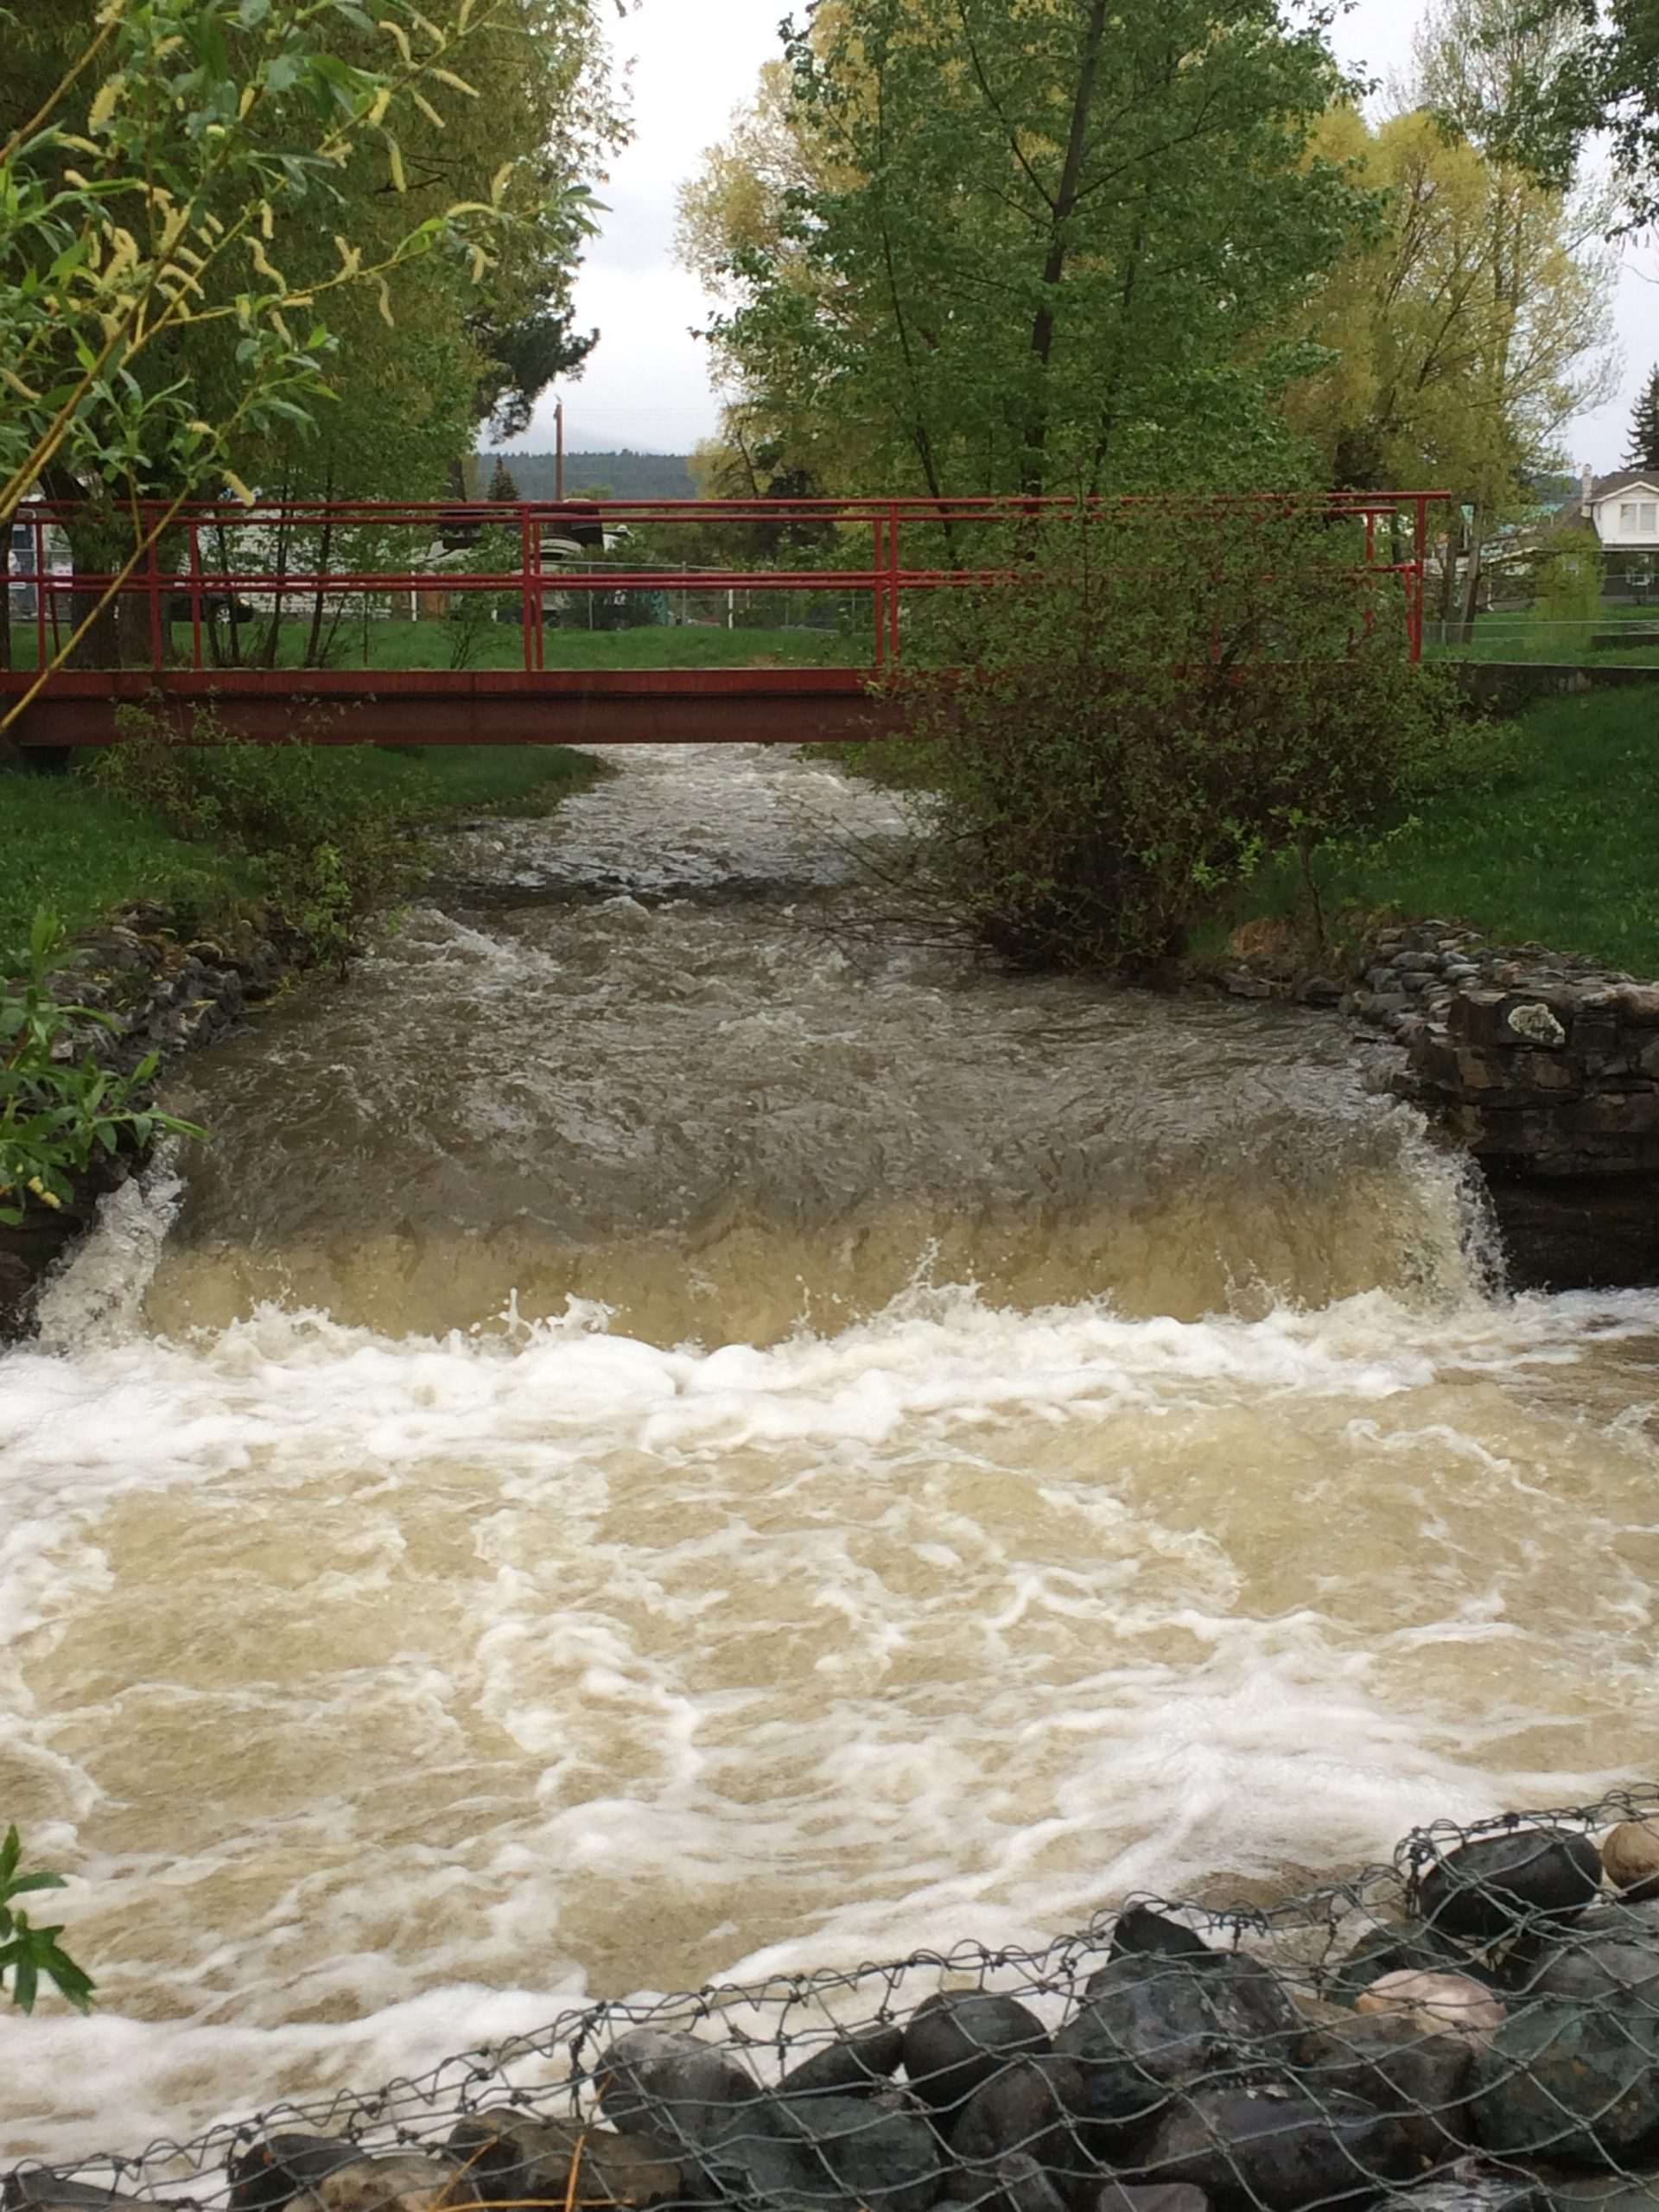 BC River Forecast Centre urges continued caution near EK waterways